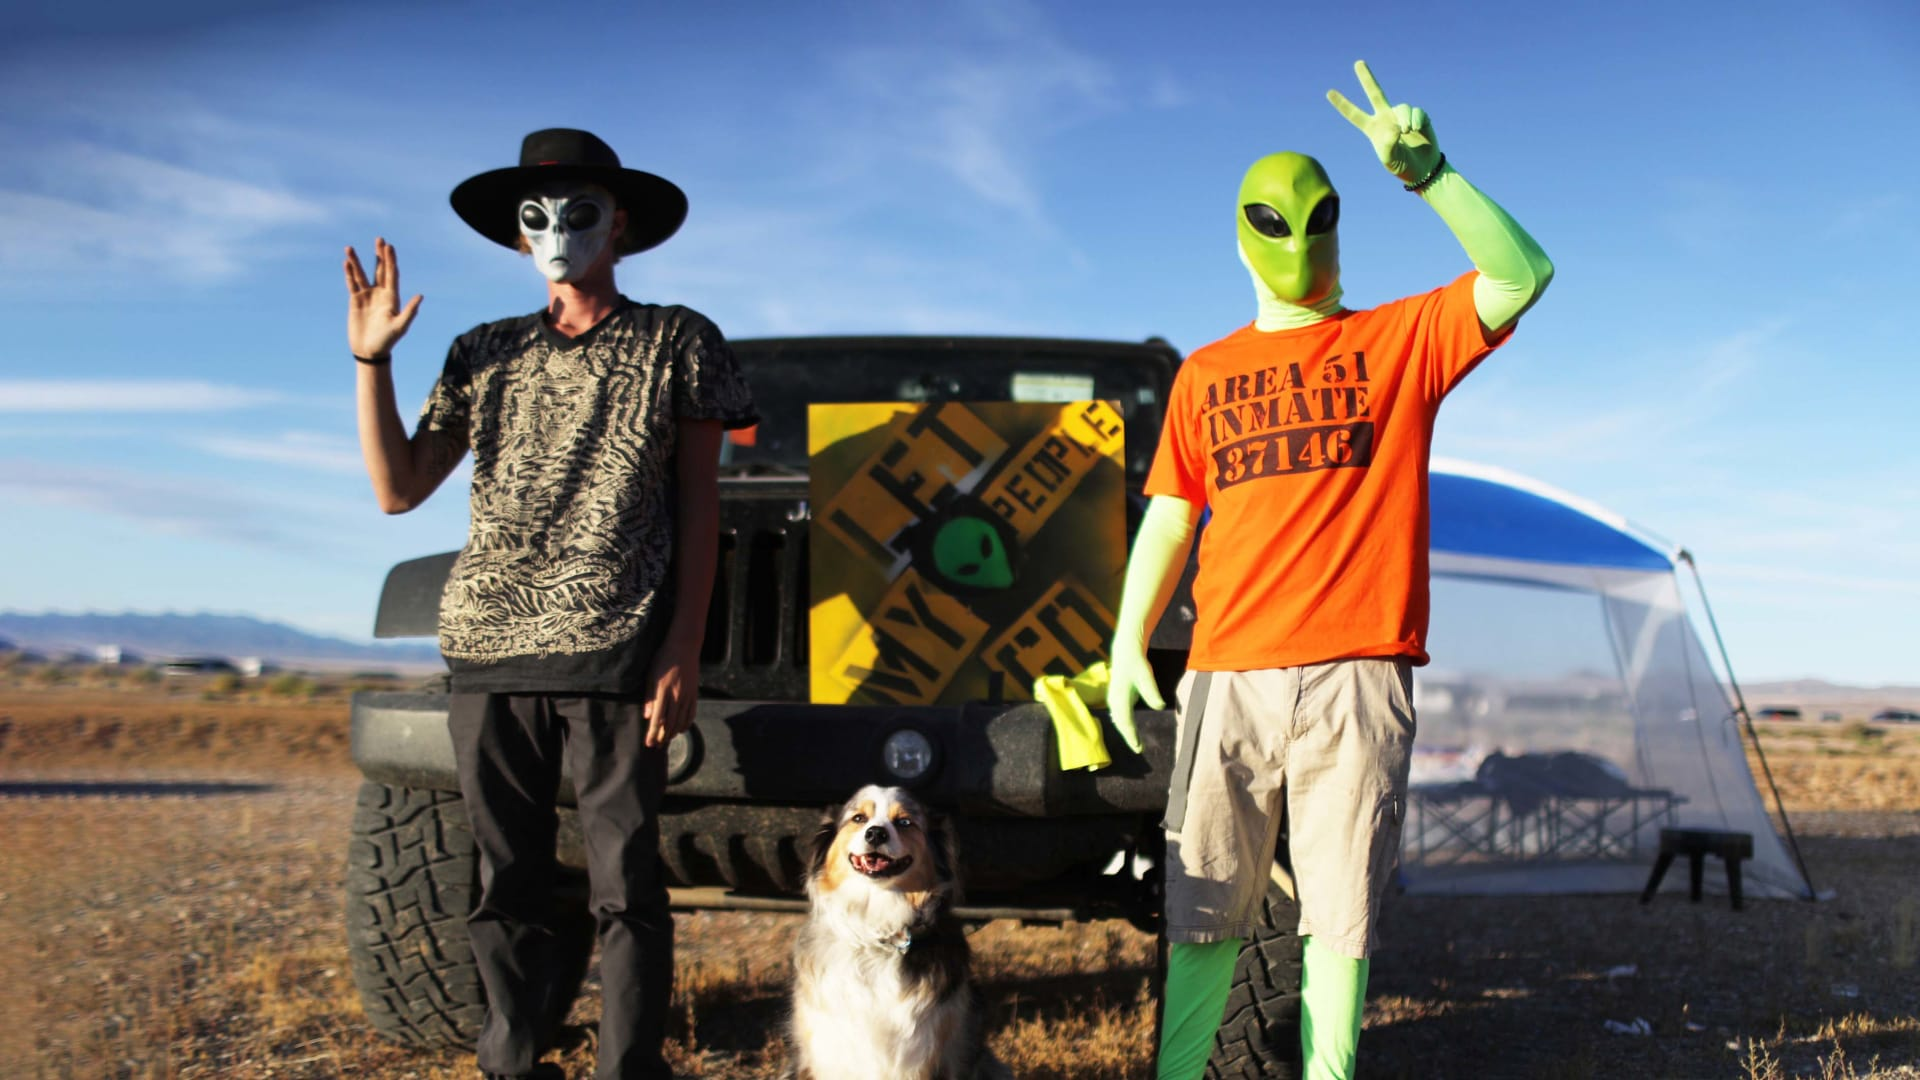 Alien-Themed Businesses to Make Hay From the Government's 'Flying Objects' Report